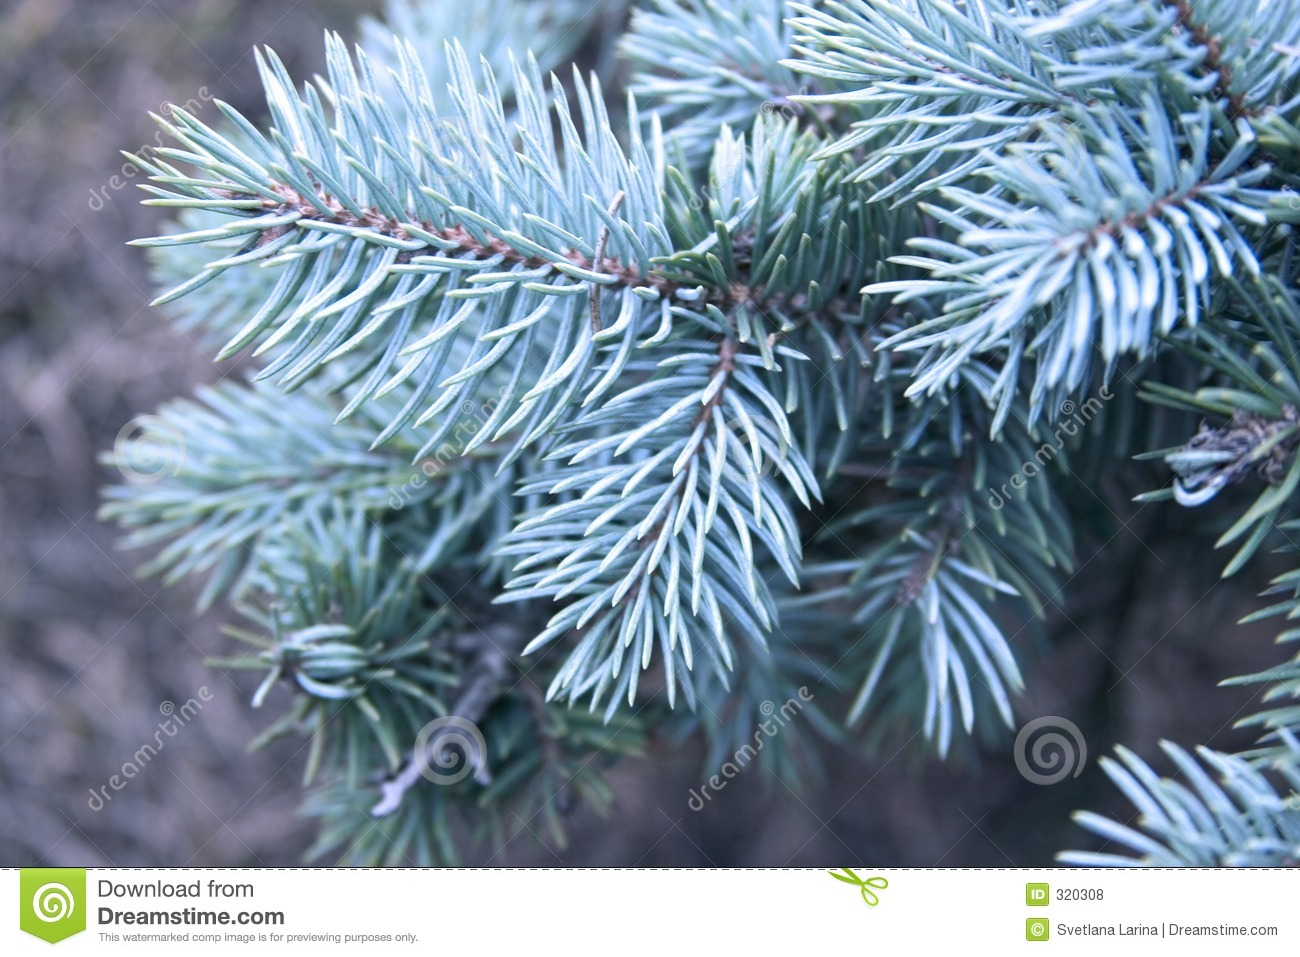 Royalty Free Stock Photos Blue Pine Tree Image320308 on design of pine trees